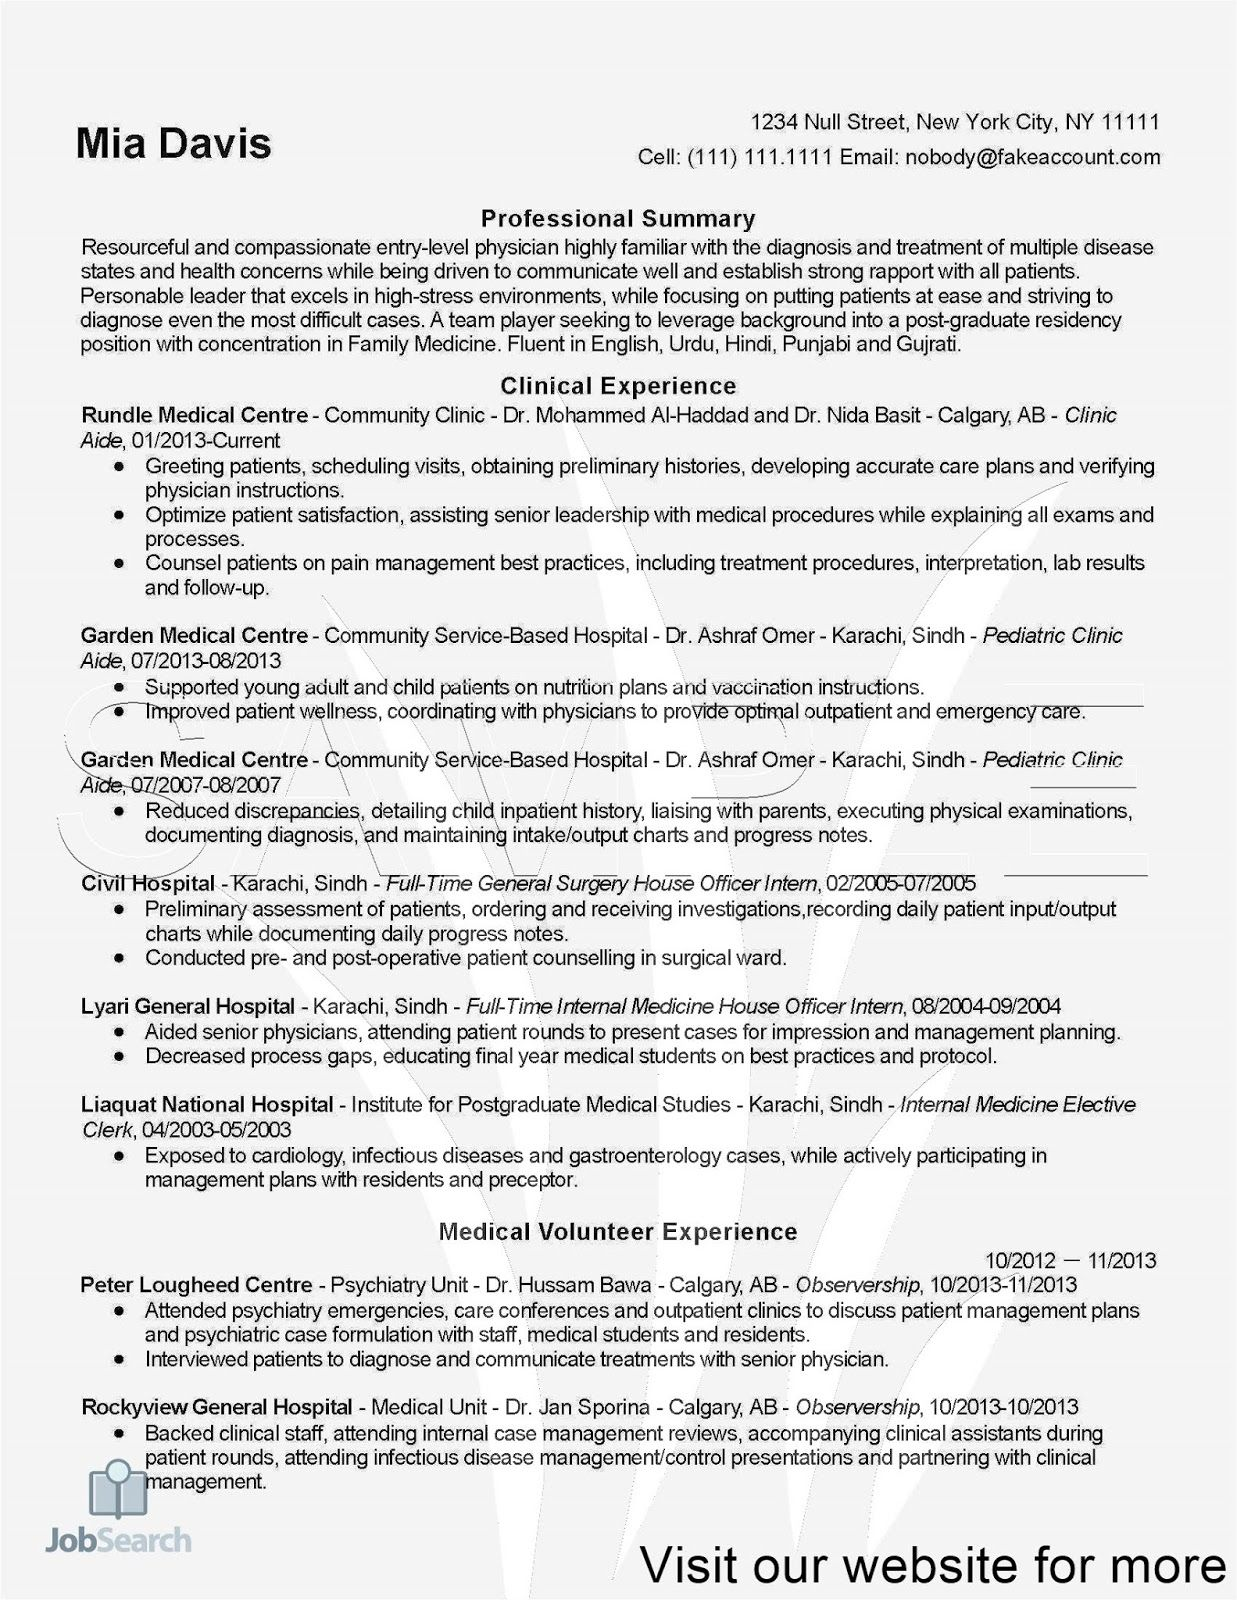 Resume Template / CV Template, Professional and Creative